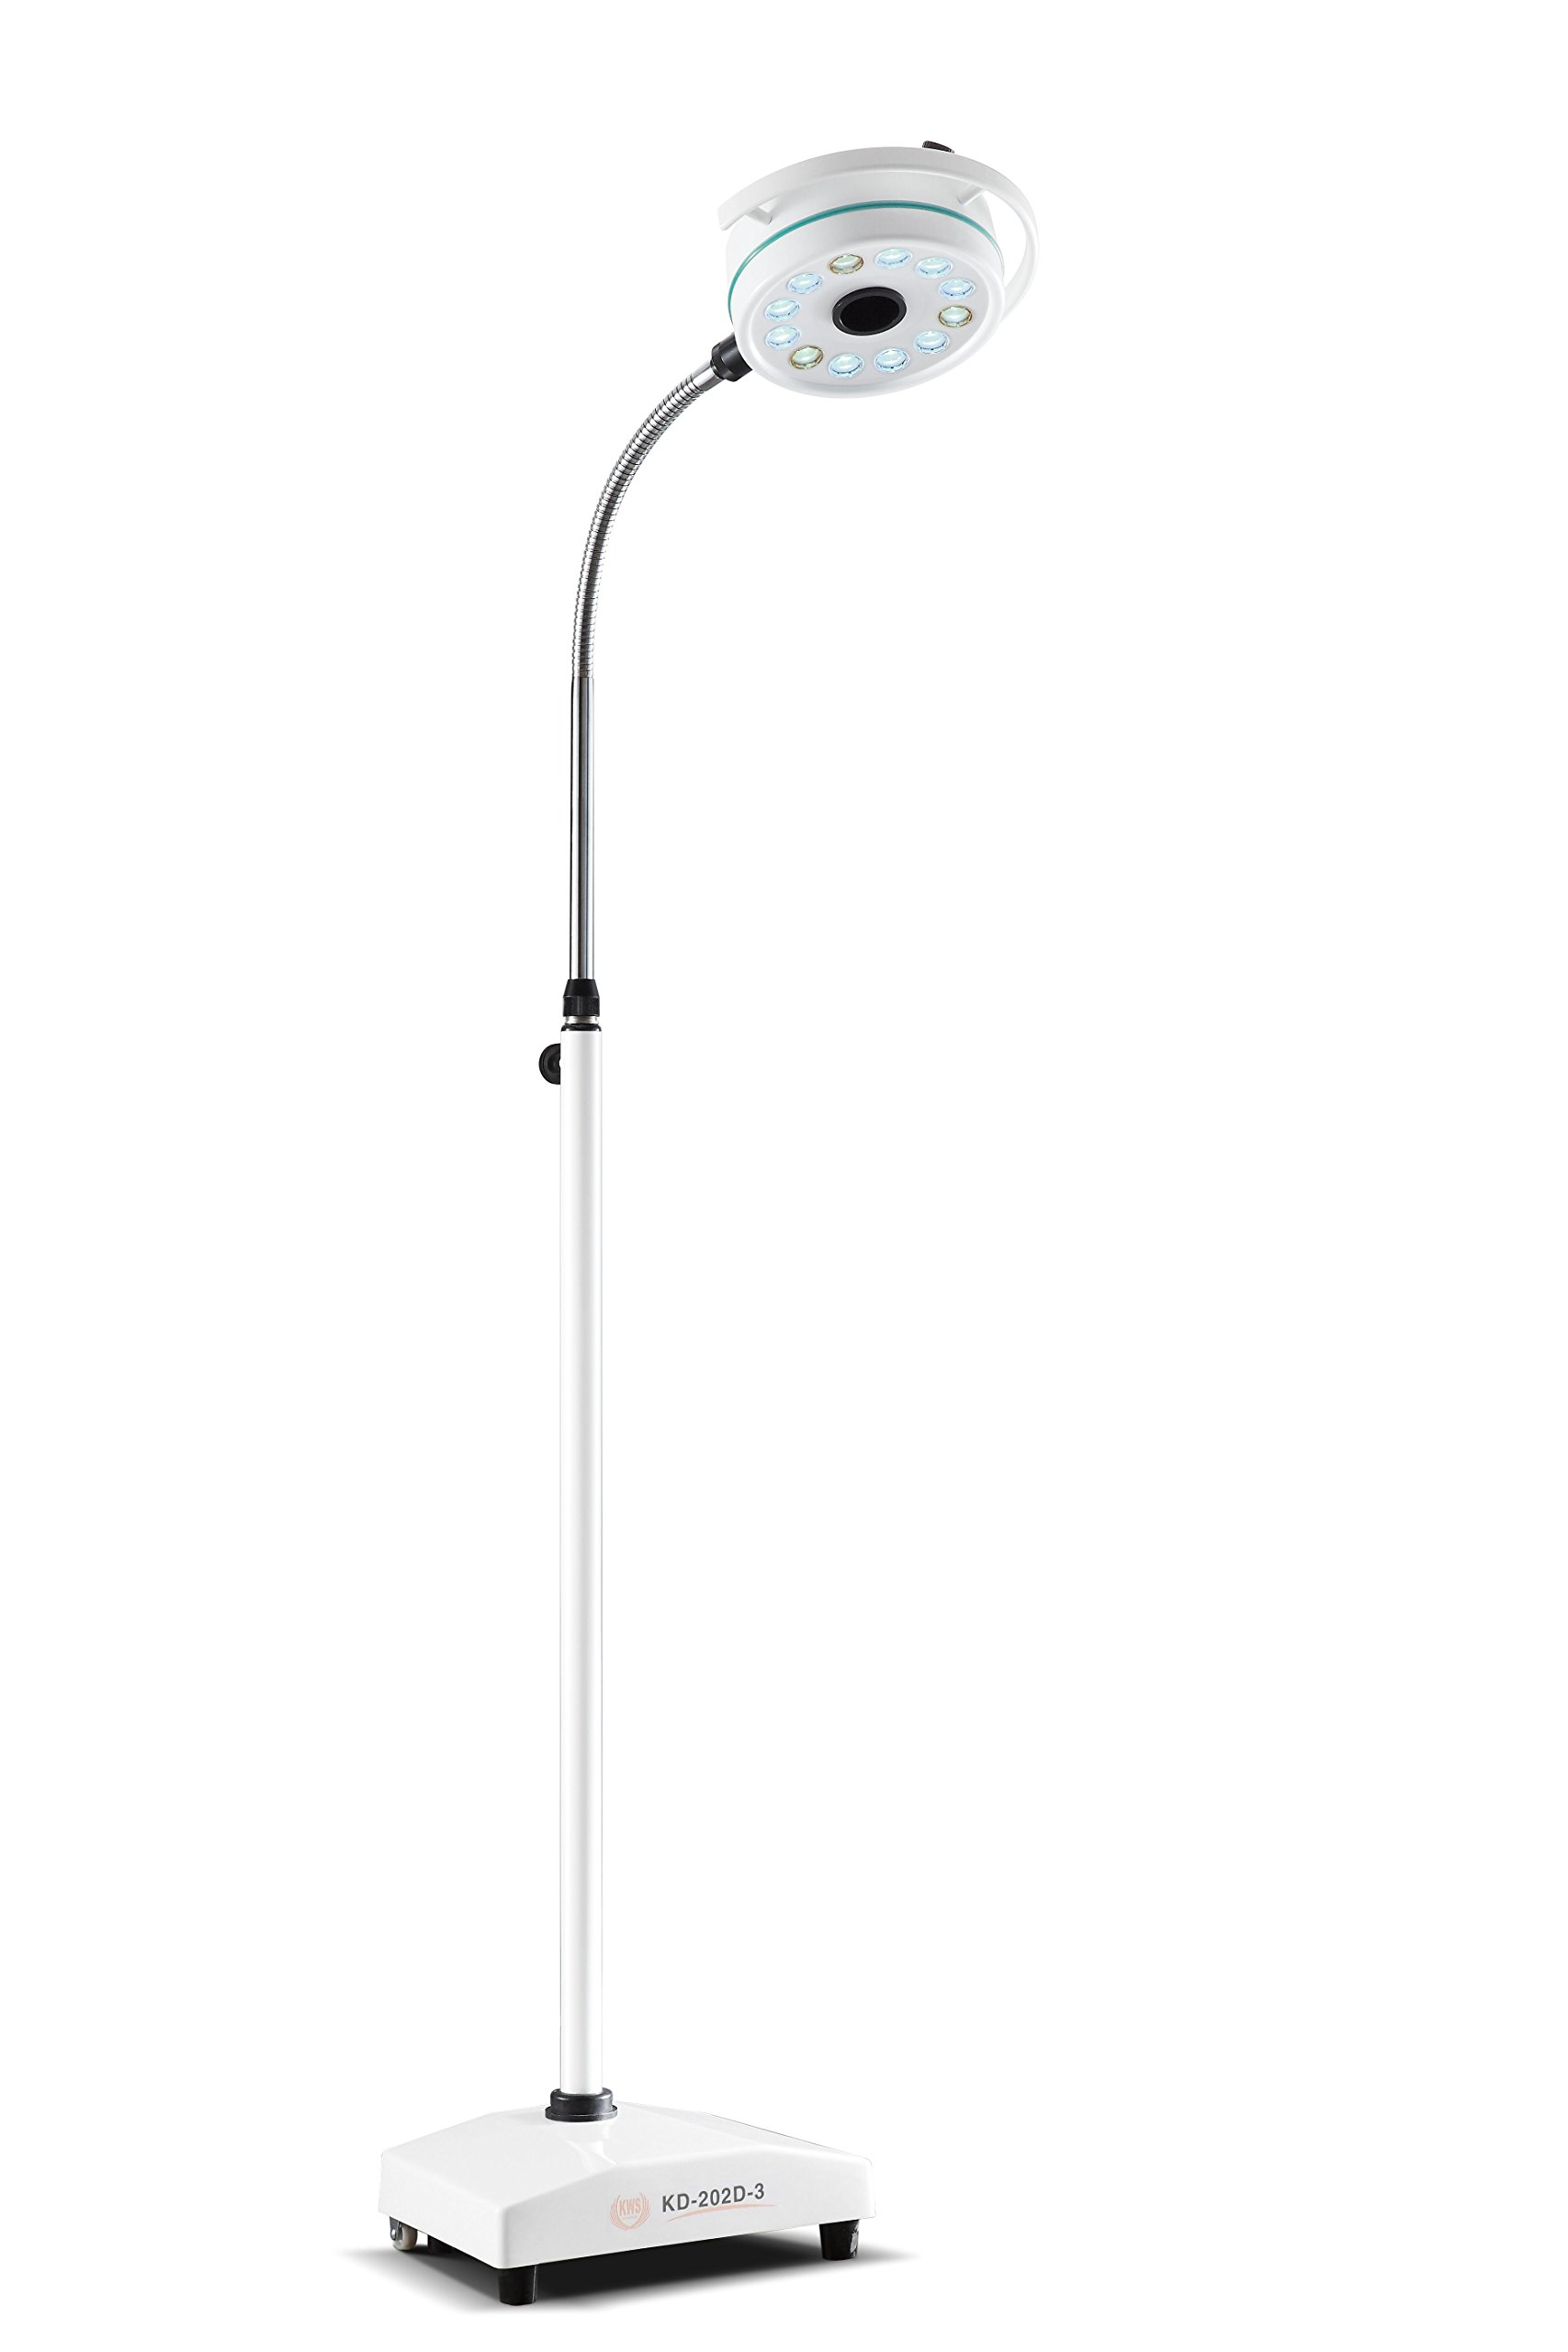 Portable Mobile LED Surgical Medical Exam Light Shadowless Lamp KD-202D-3 by Zgood (Image #1)